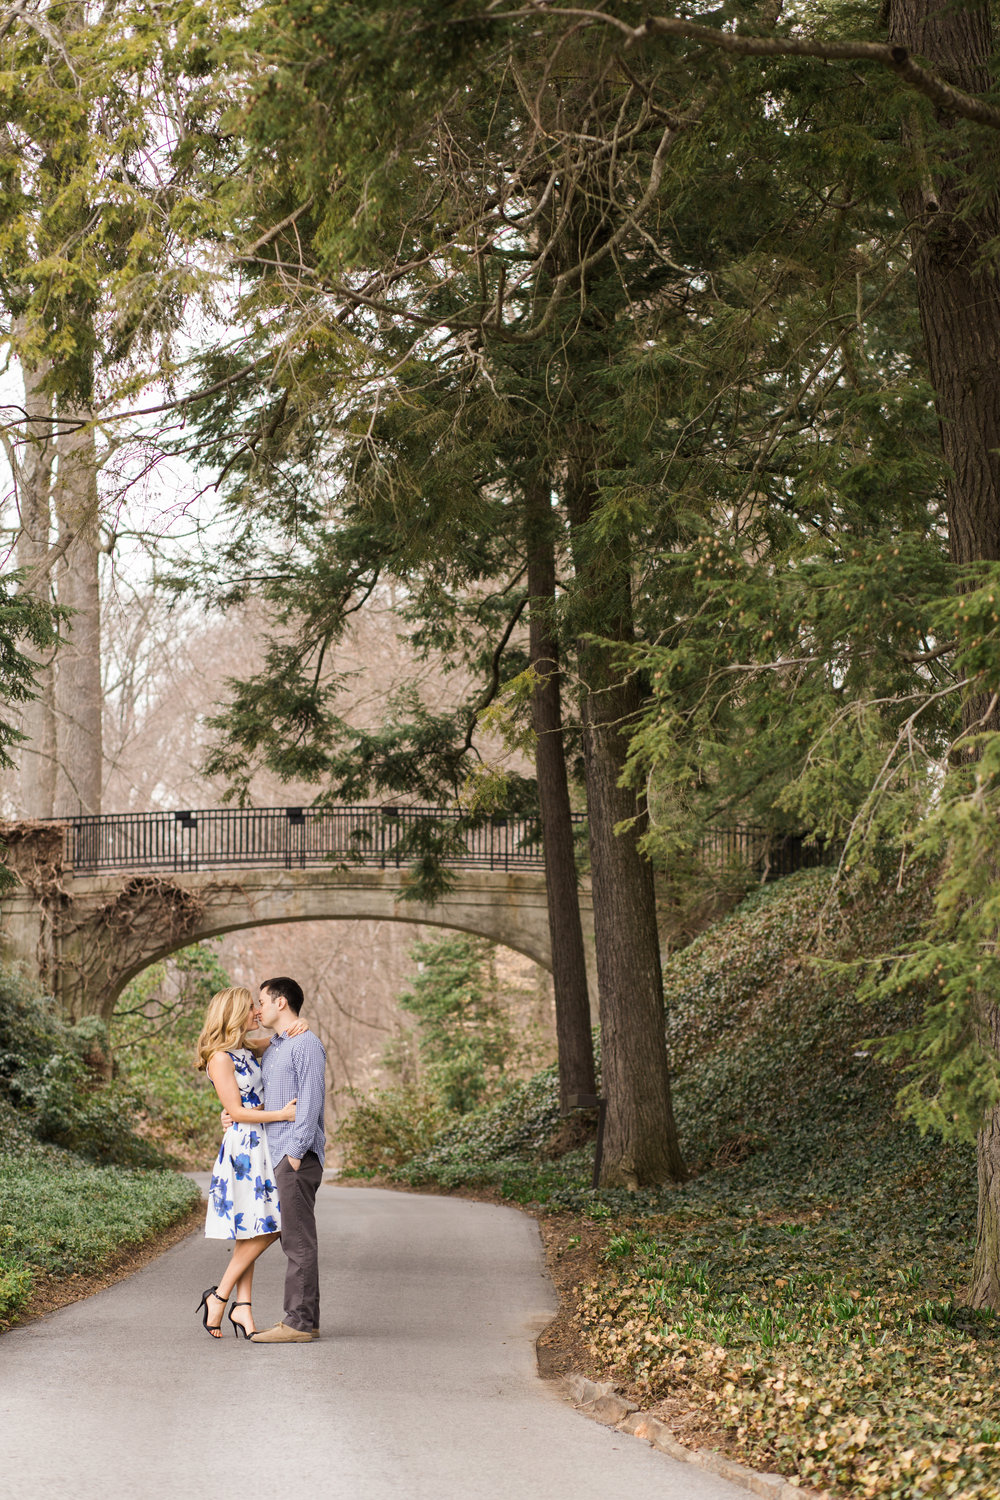 HNP-Chelsea-Jason-Longwood-Gardens-Spring-Engagement-Photos_066.jpg